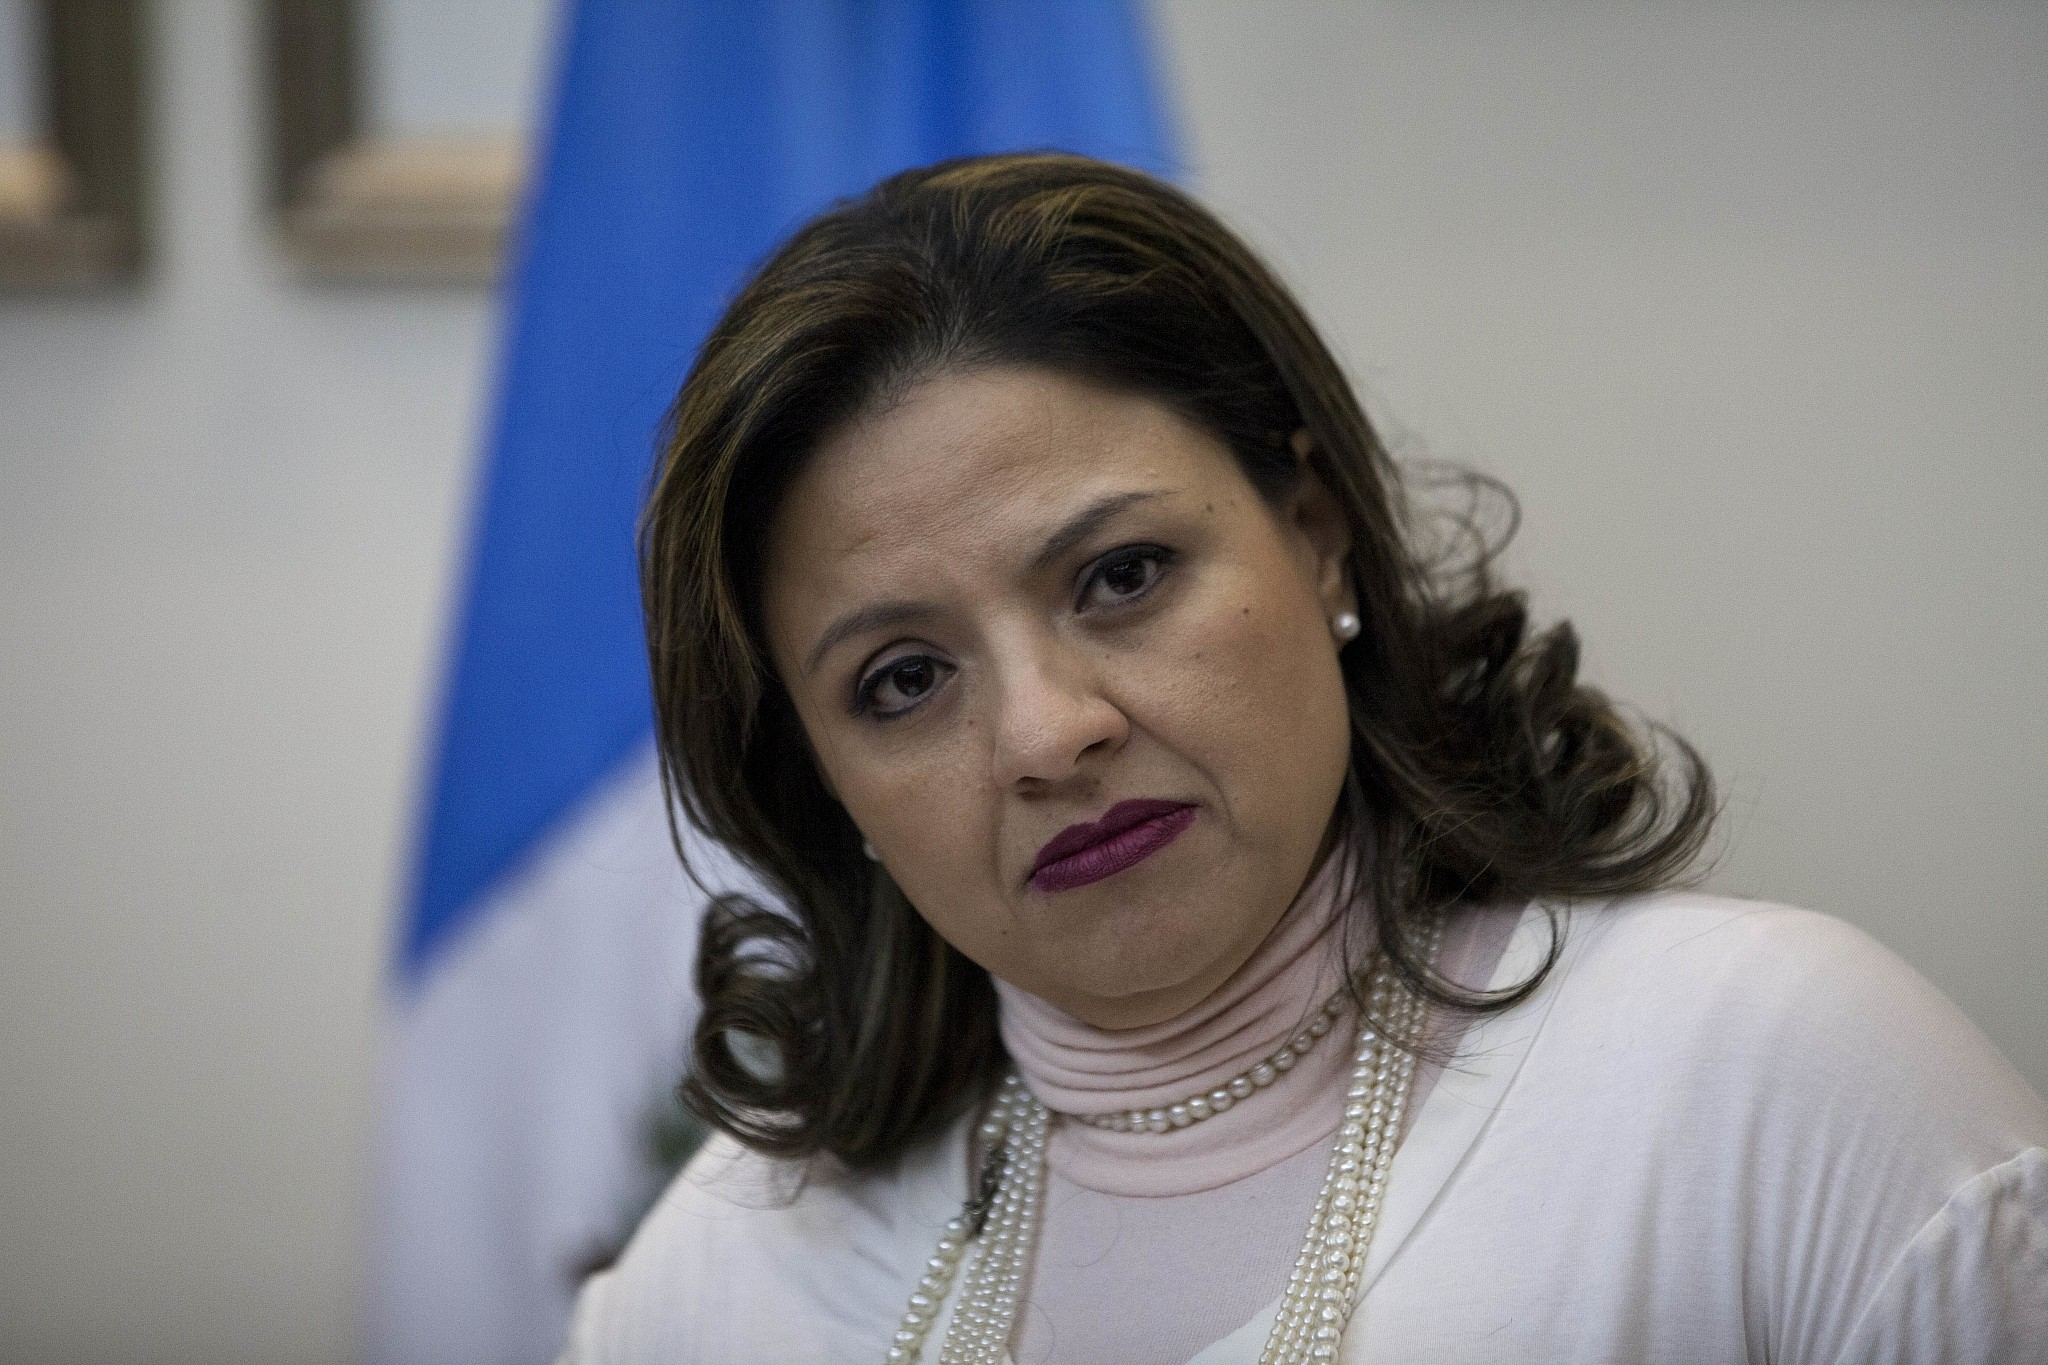 Mirroring Trump's resolution, Guatemala plans to maneuver embassy in Israel to Jerusalem